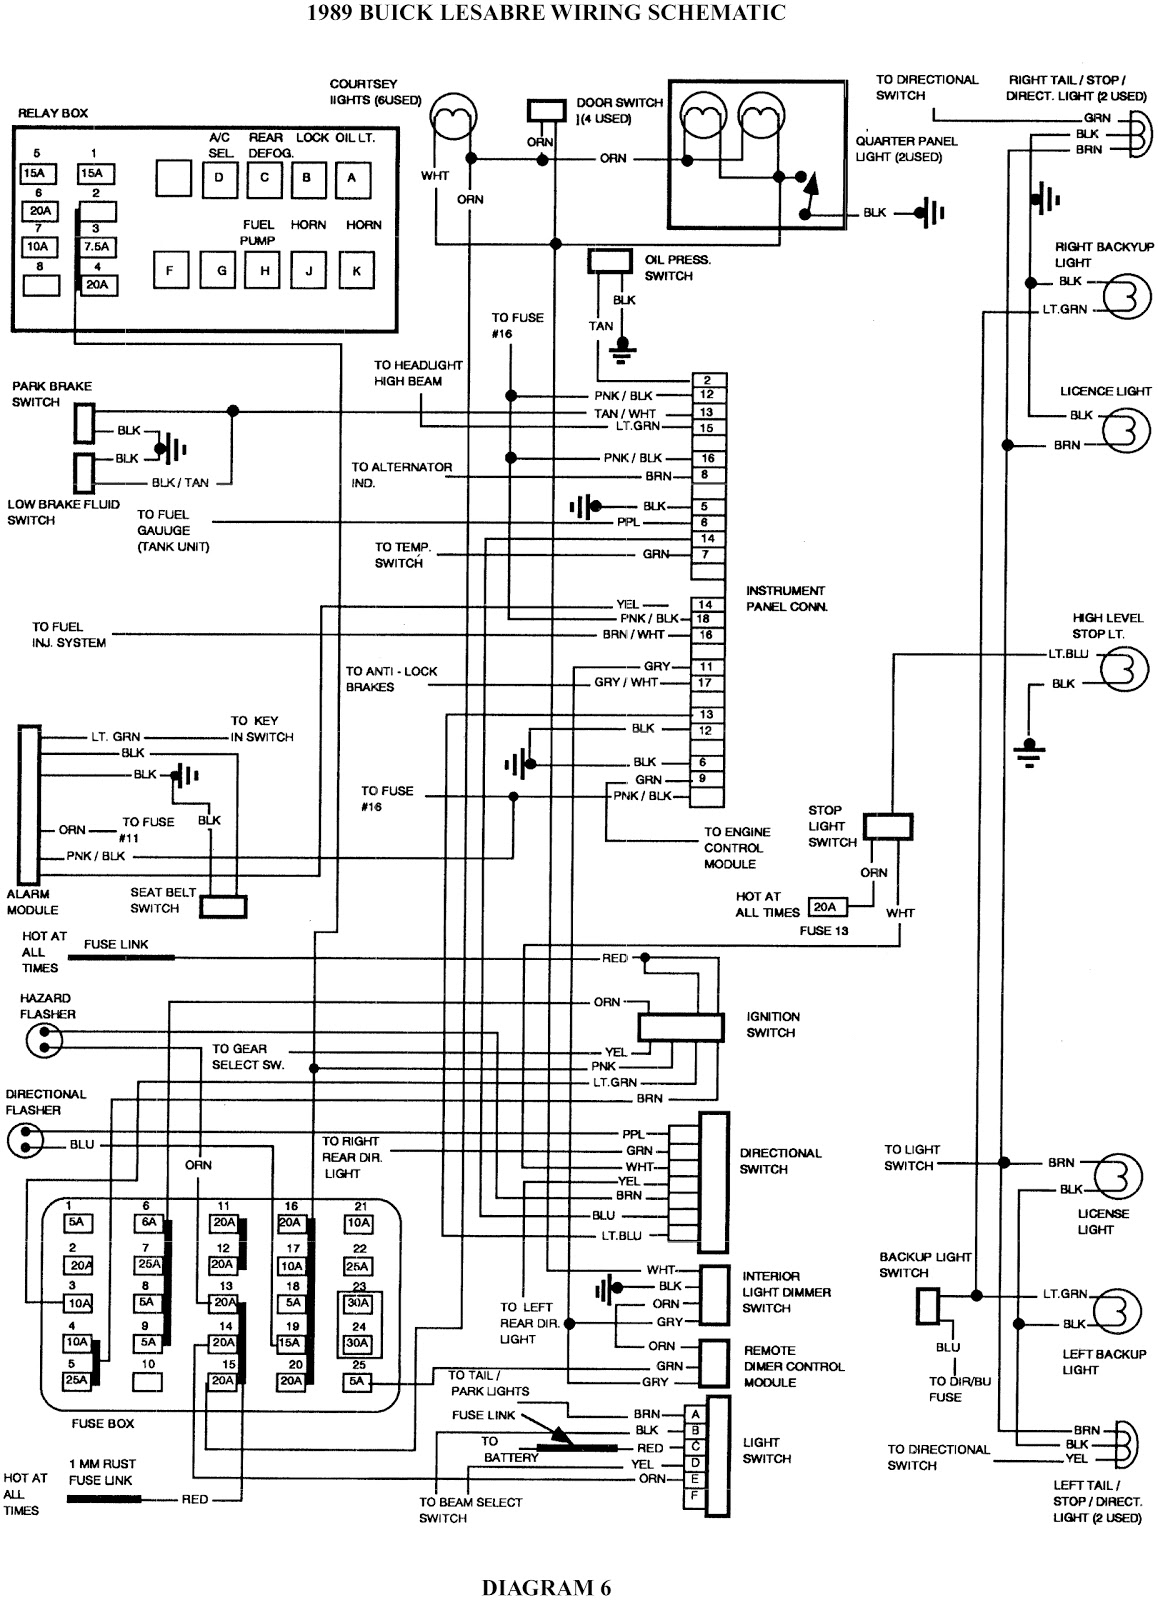 95 buick century wiring diagram | dry-exposure wiring diagram work -  dry-exposure.farmaciabaudoin.it  farmaciabaudoin.it